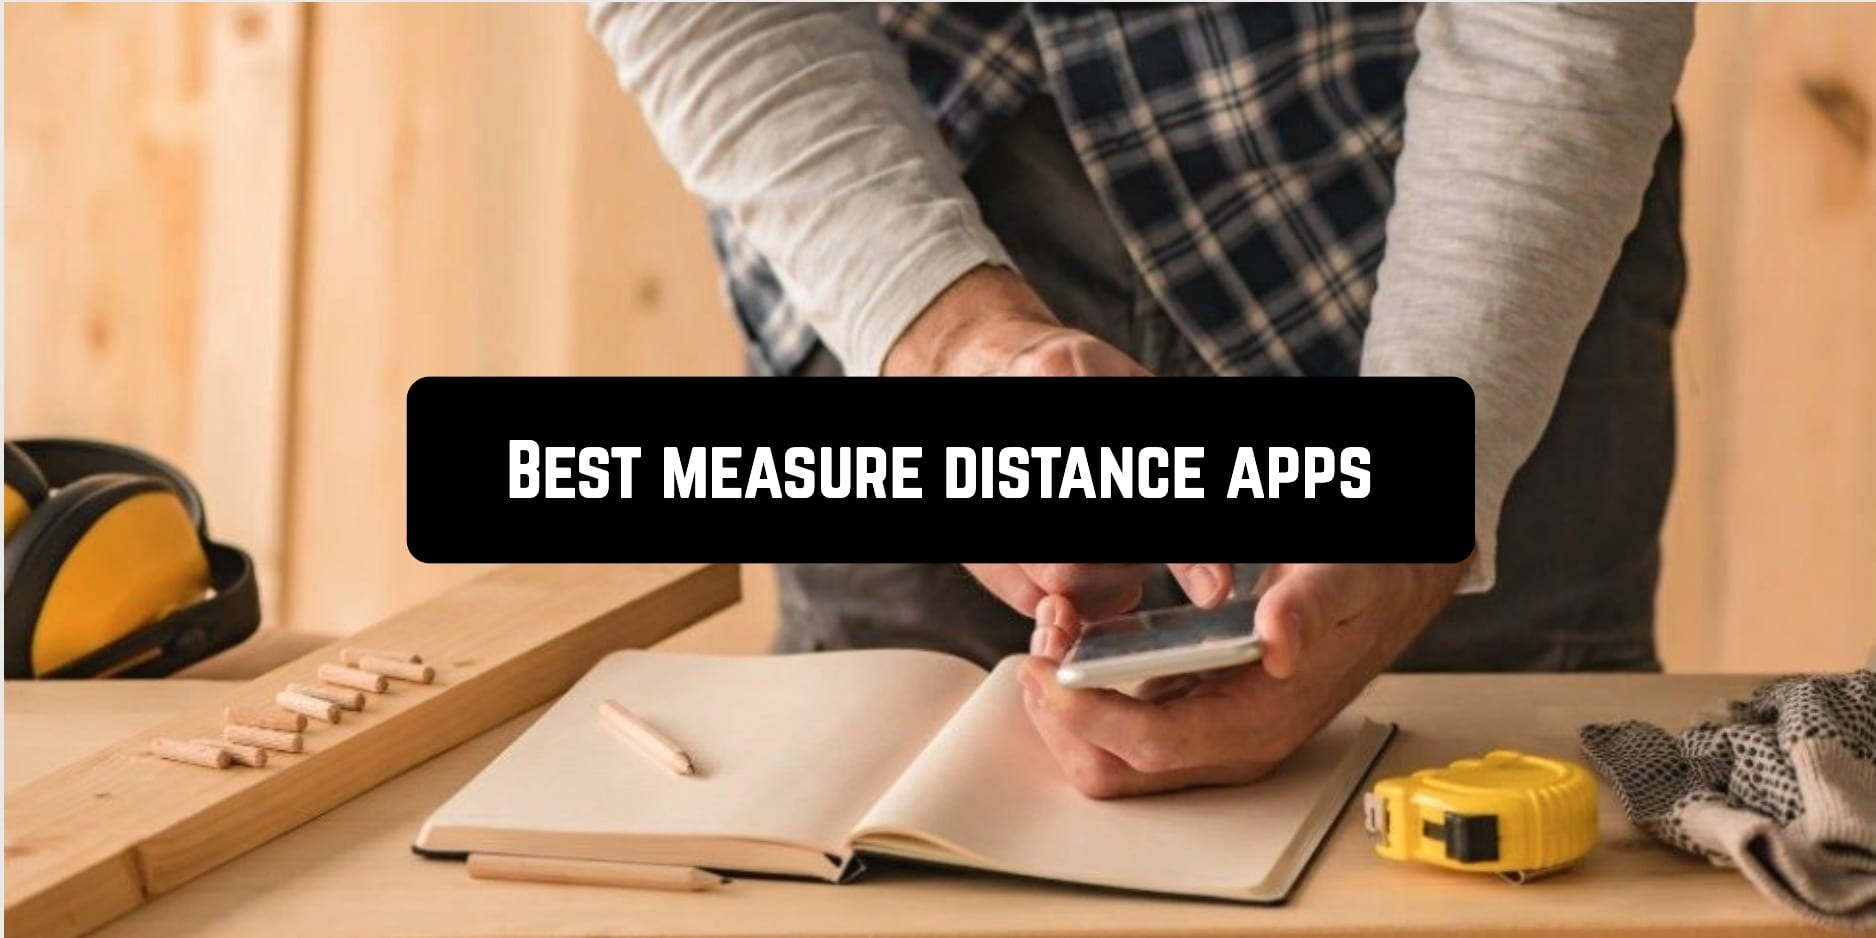 Best measure distance apps